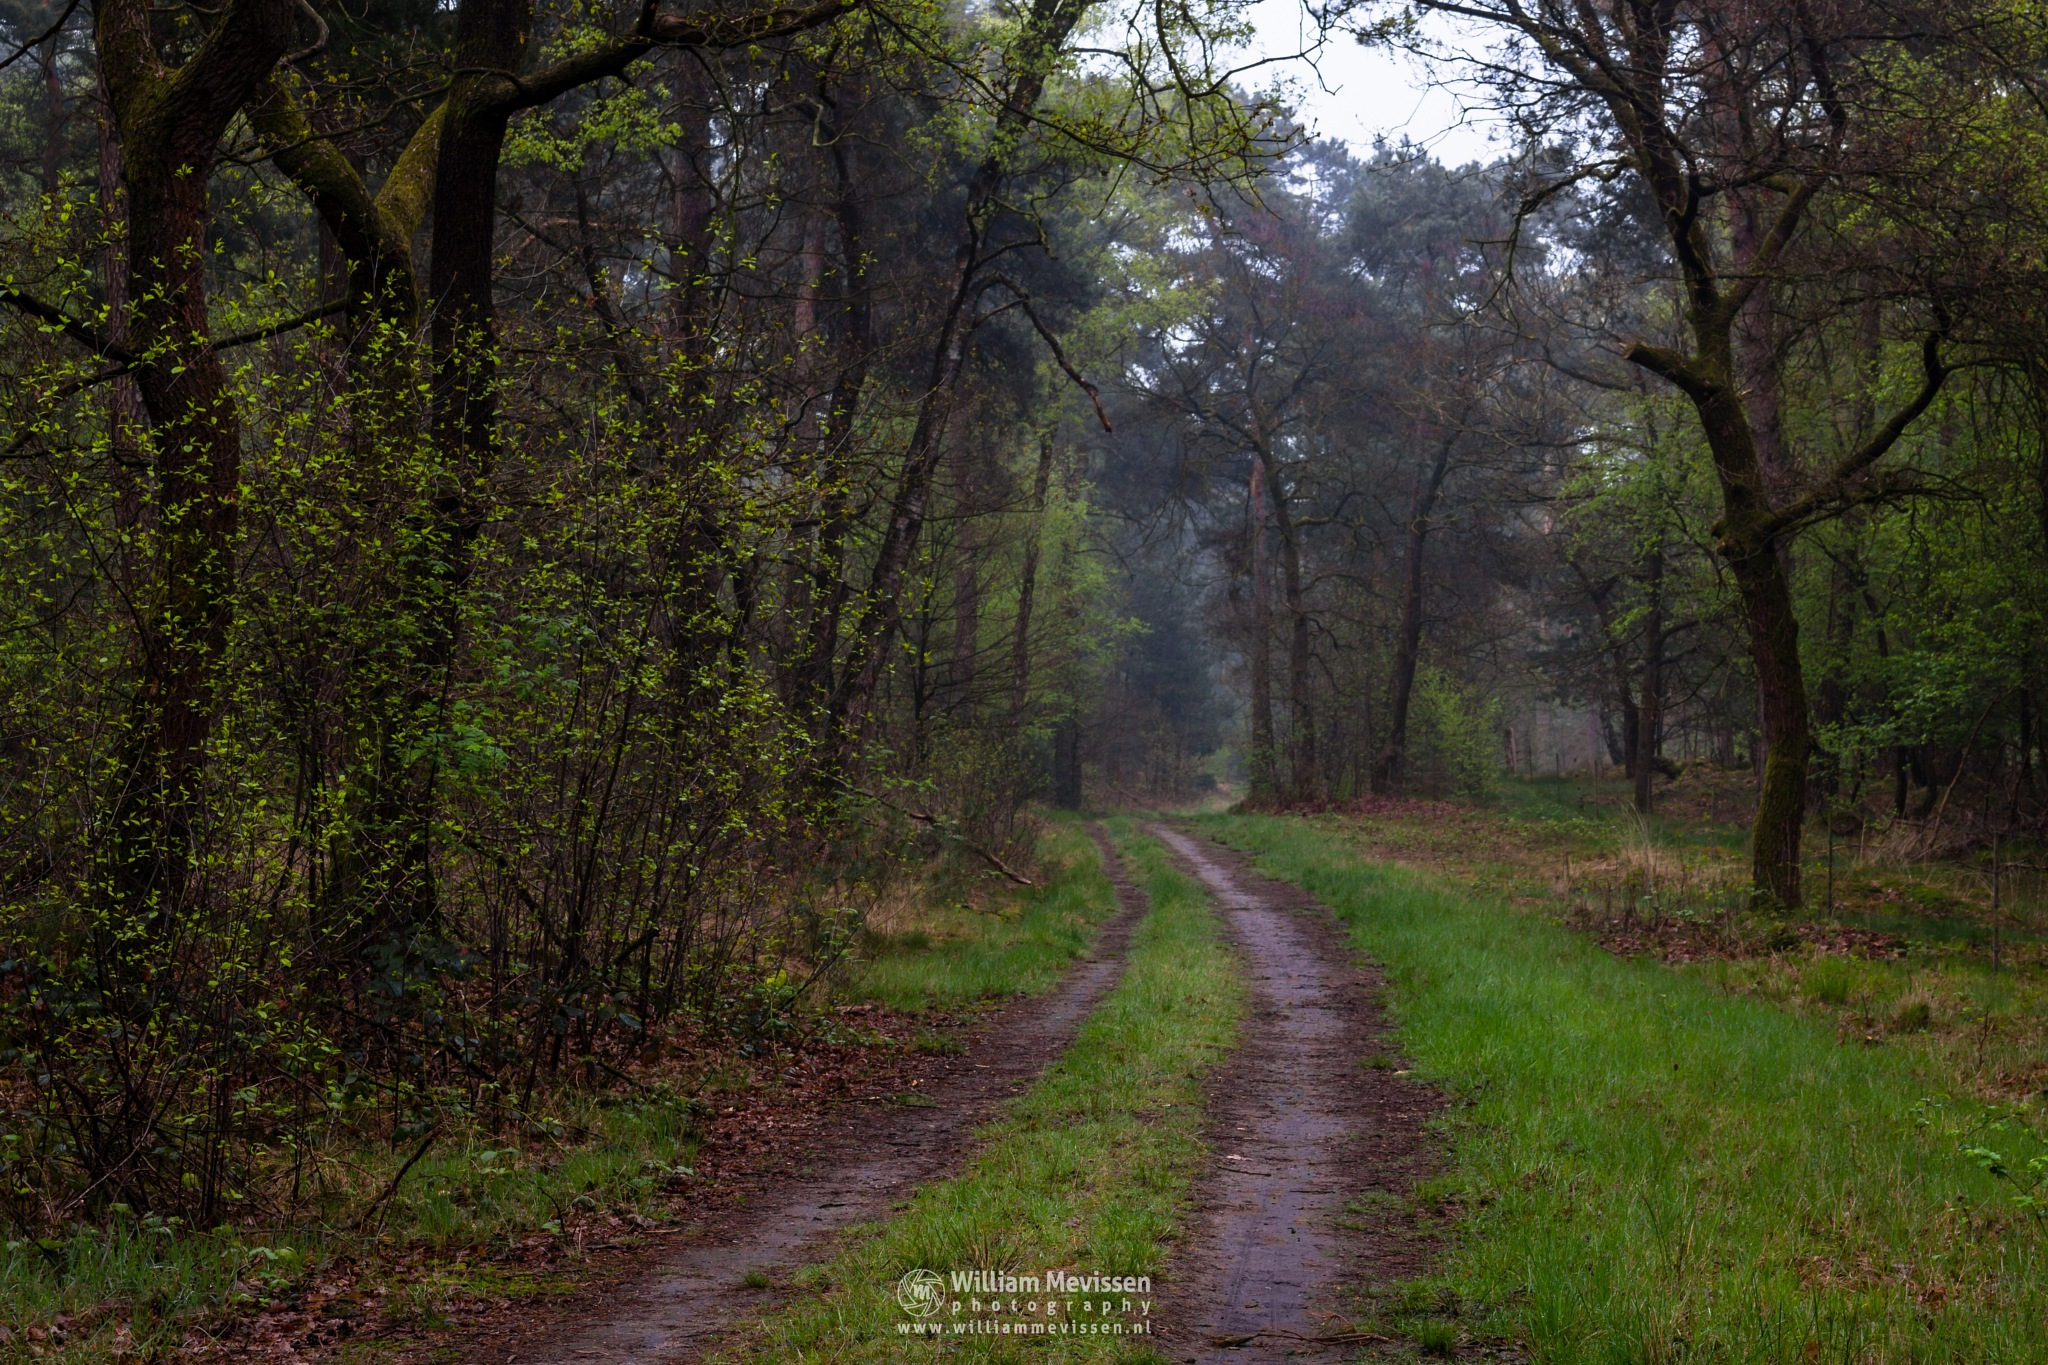 Drizzly Misty Forest by William Mevissen